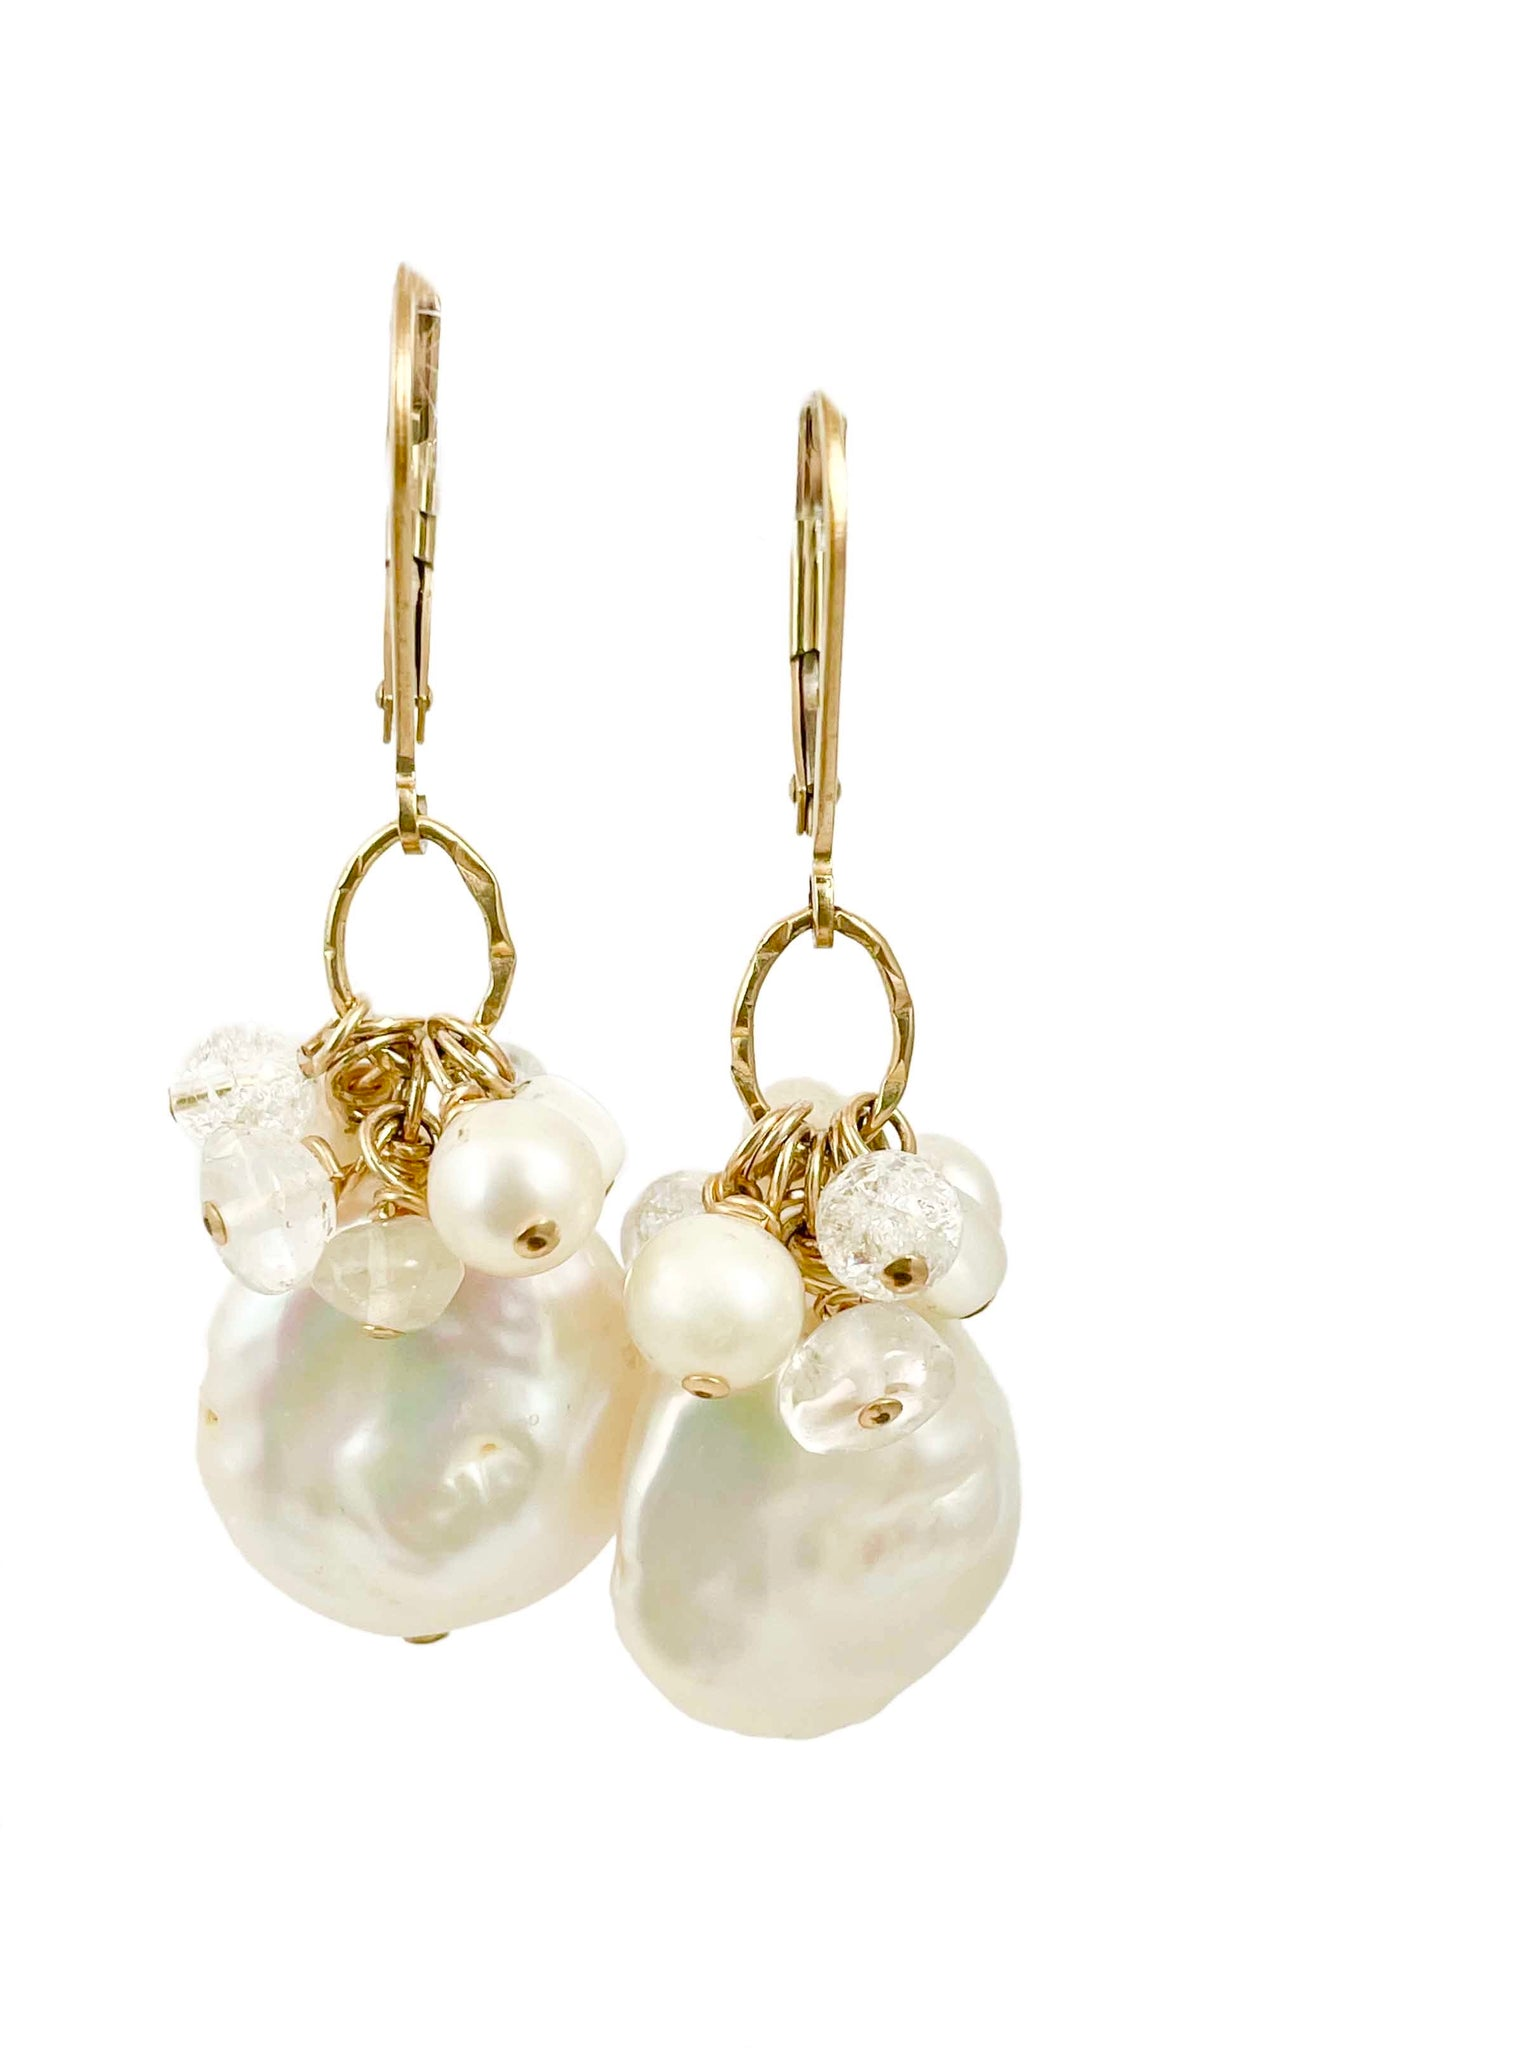 Pearl cluster earrings | coco elegance